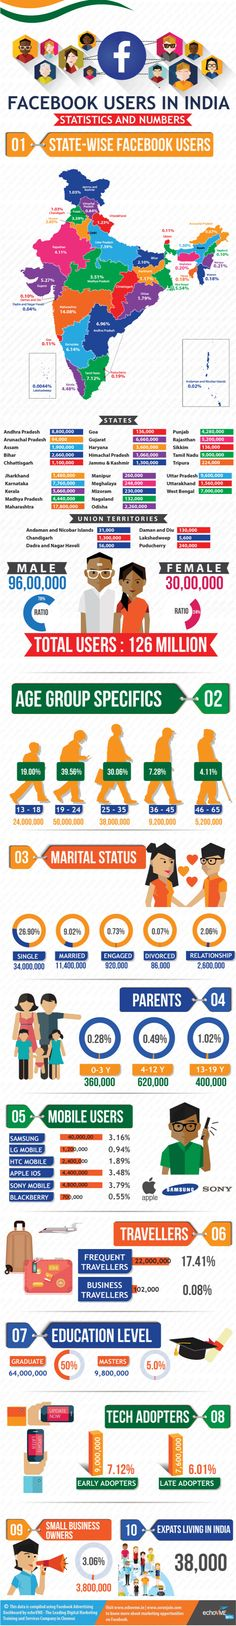 Facebook Users in India Stats and Numbers #infographic #Facebook #India